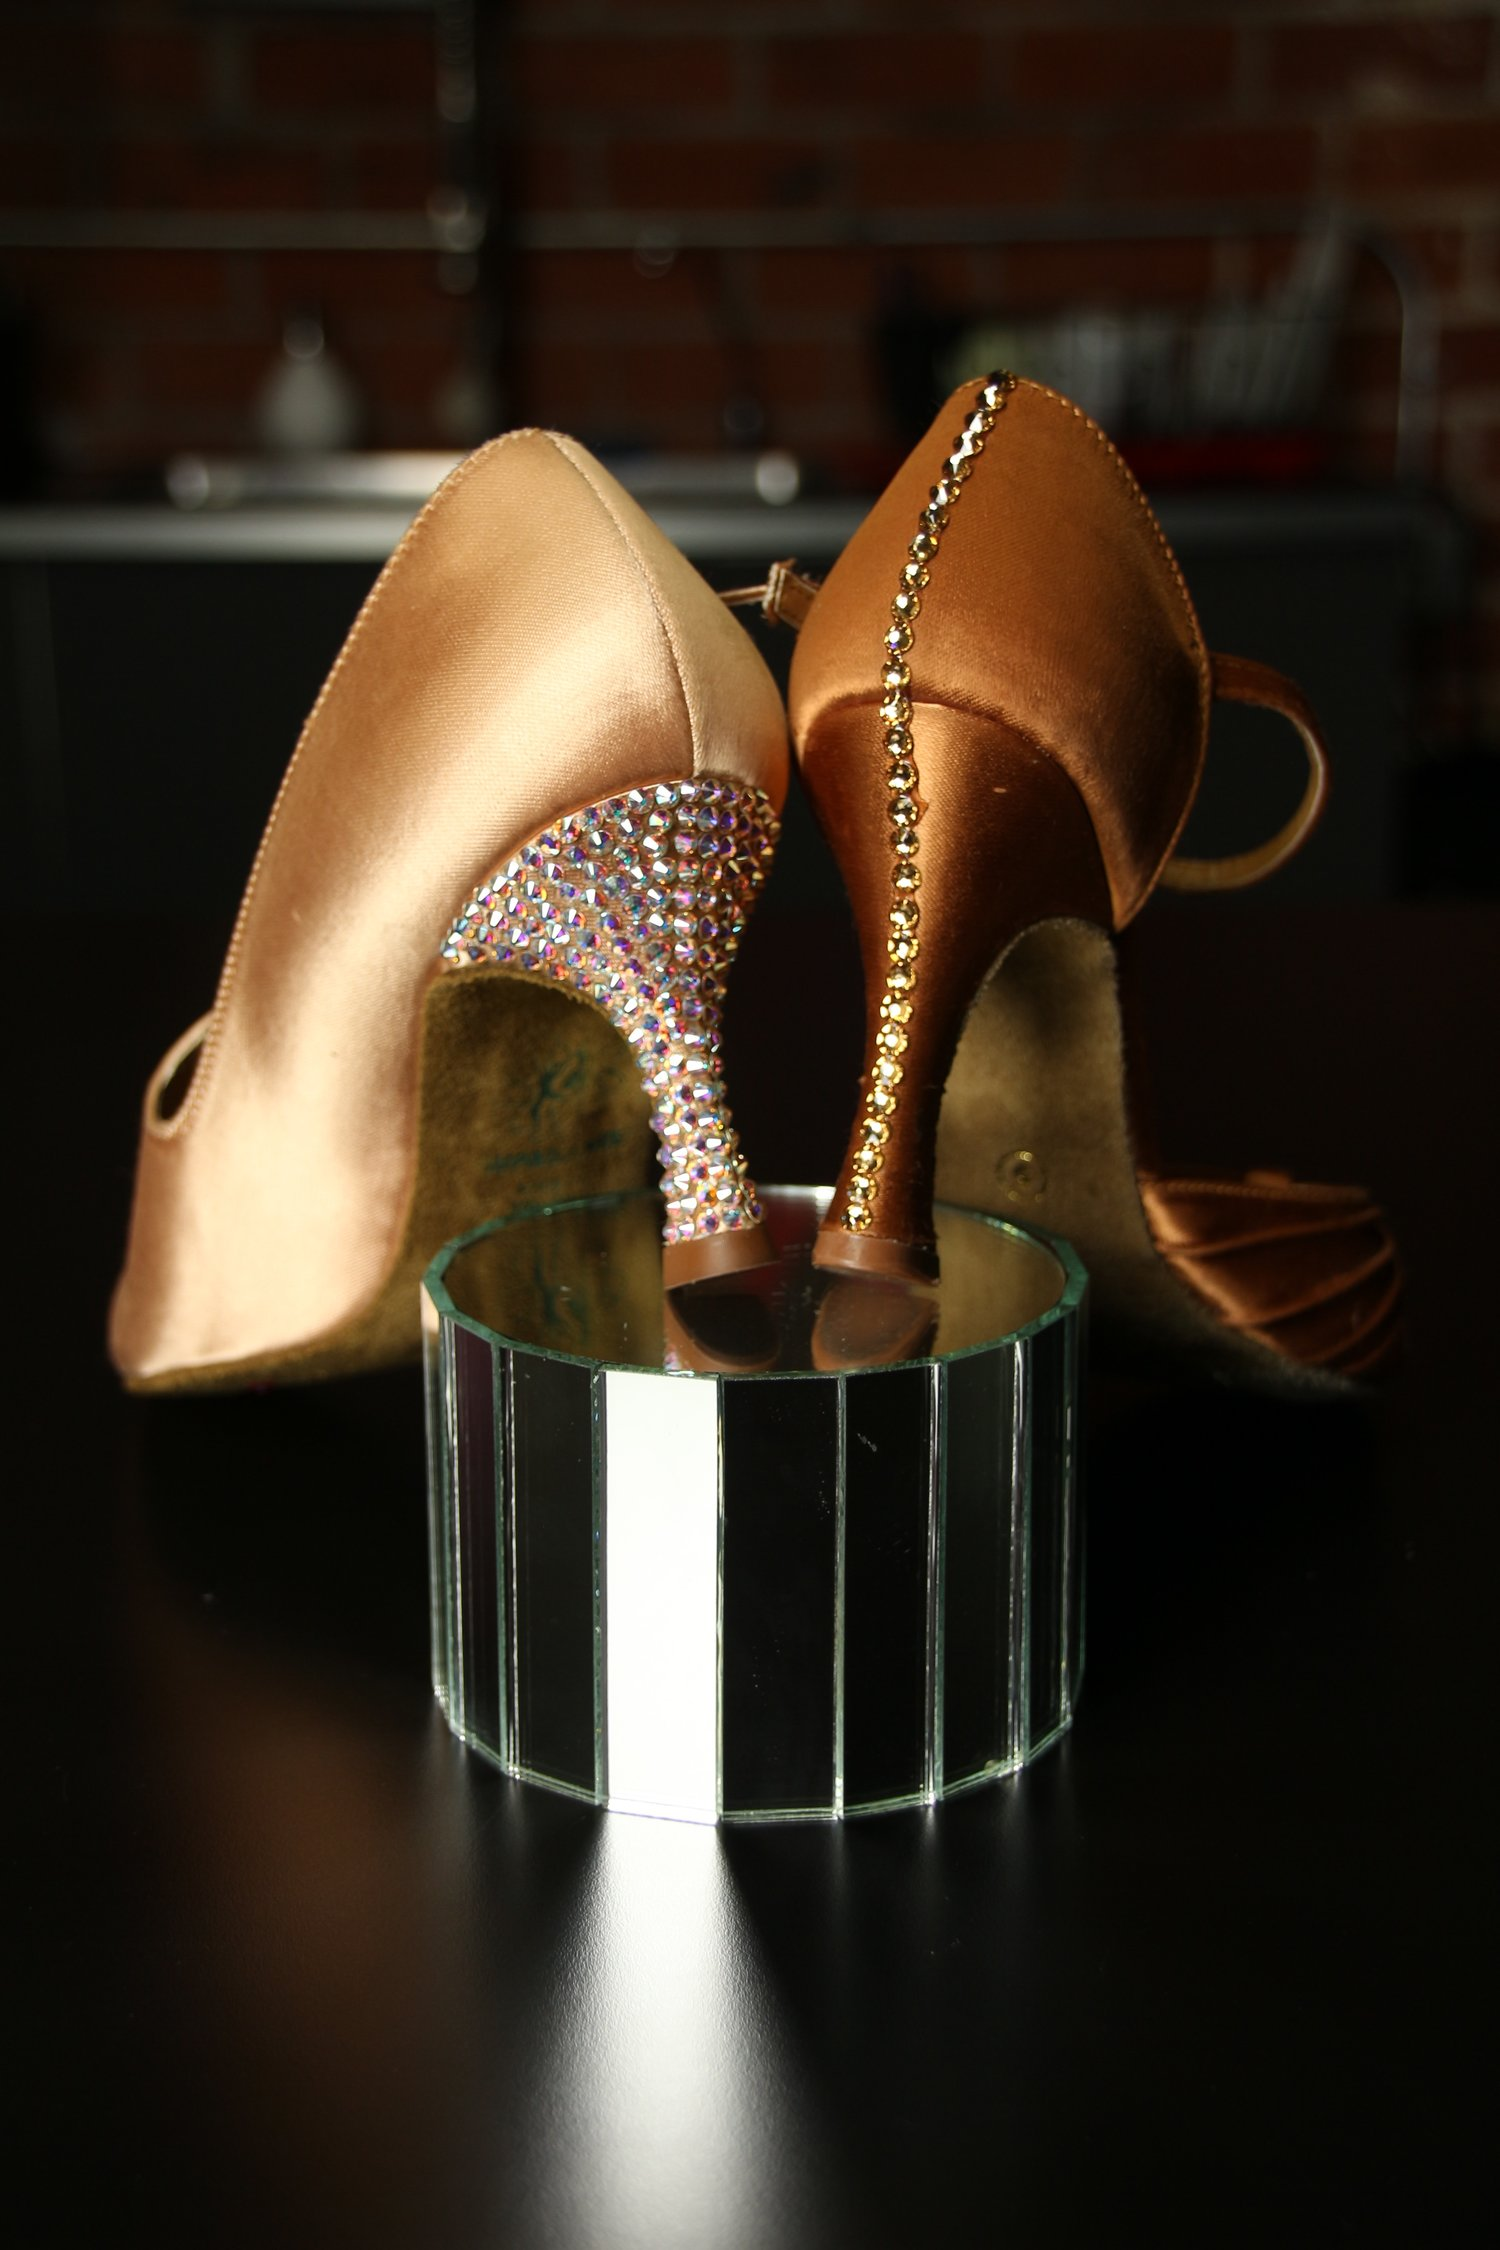 df5919846 There are several advantages to rhinestoning your shoes. Most important of  which is more sparkle! And don't worry there are no downsides! stoning your  shoes ...